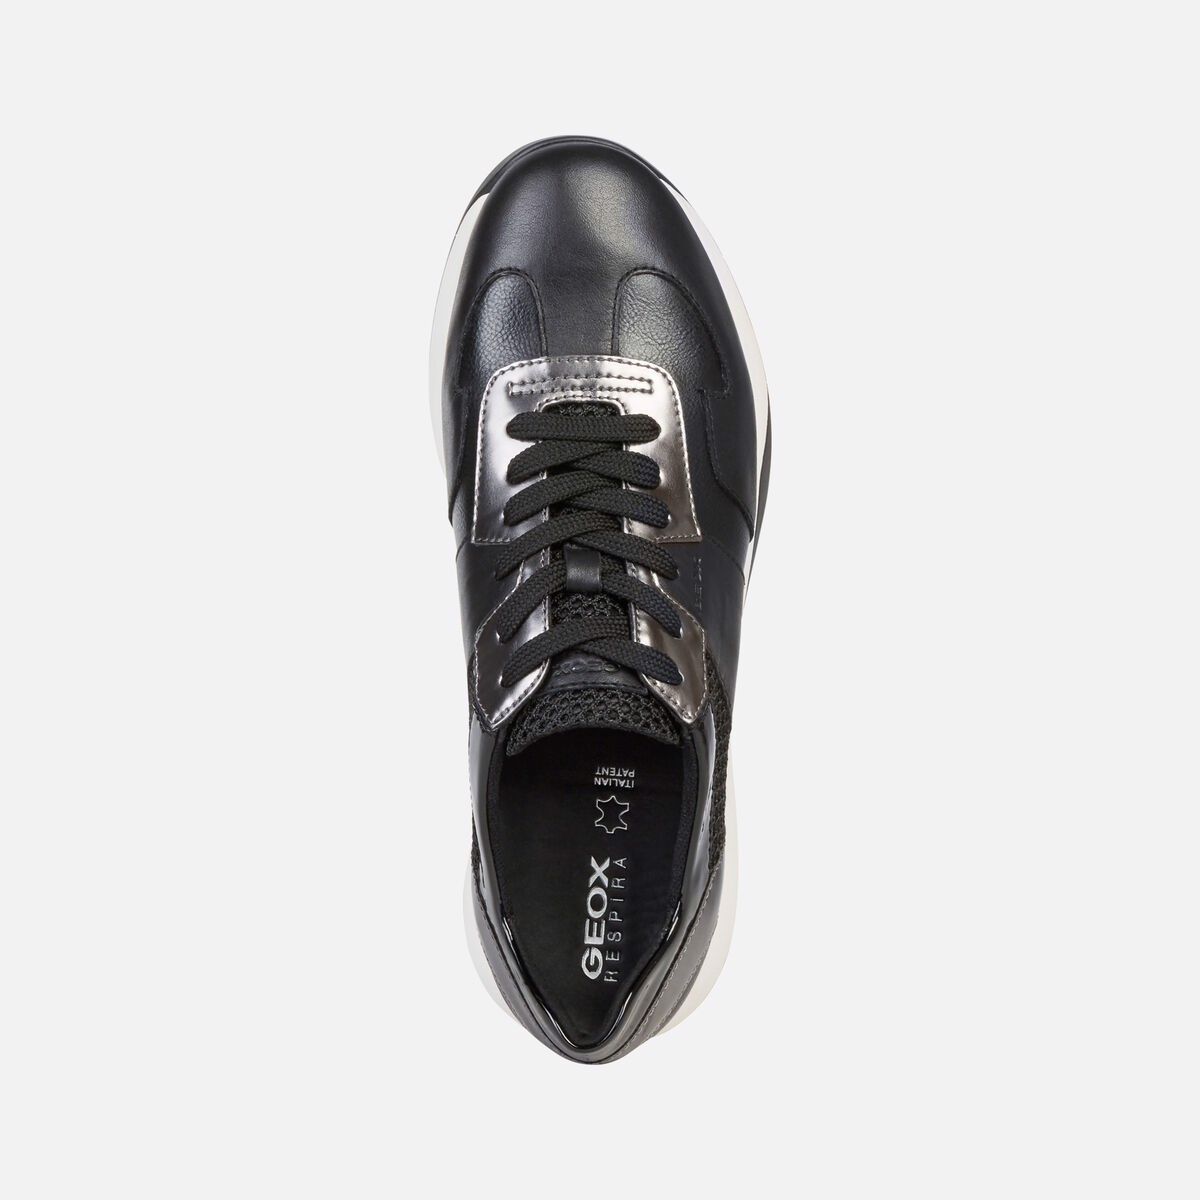 Giày Sneakers Nữ GEOX D Suzzie B